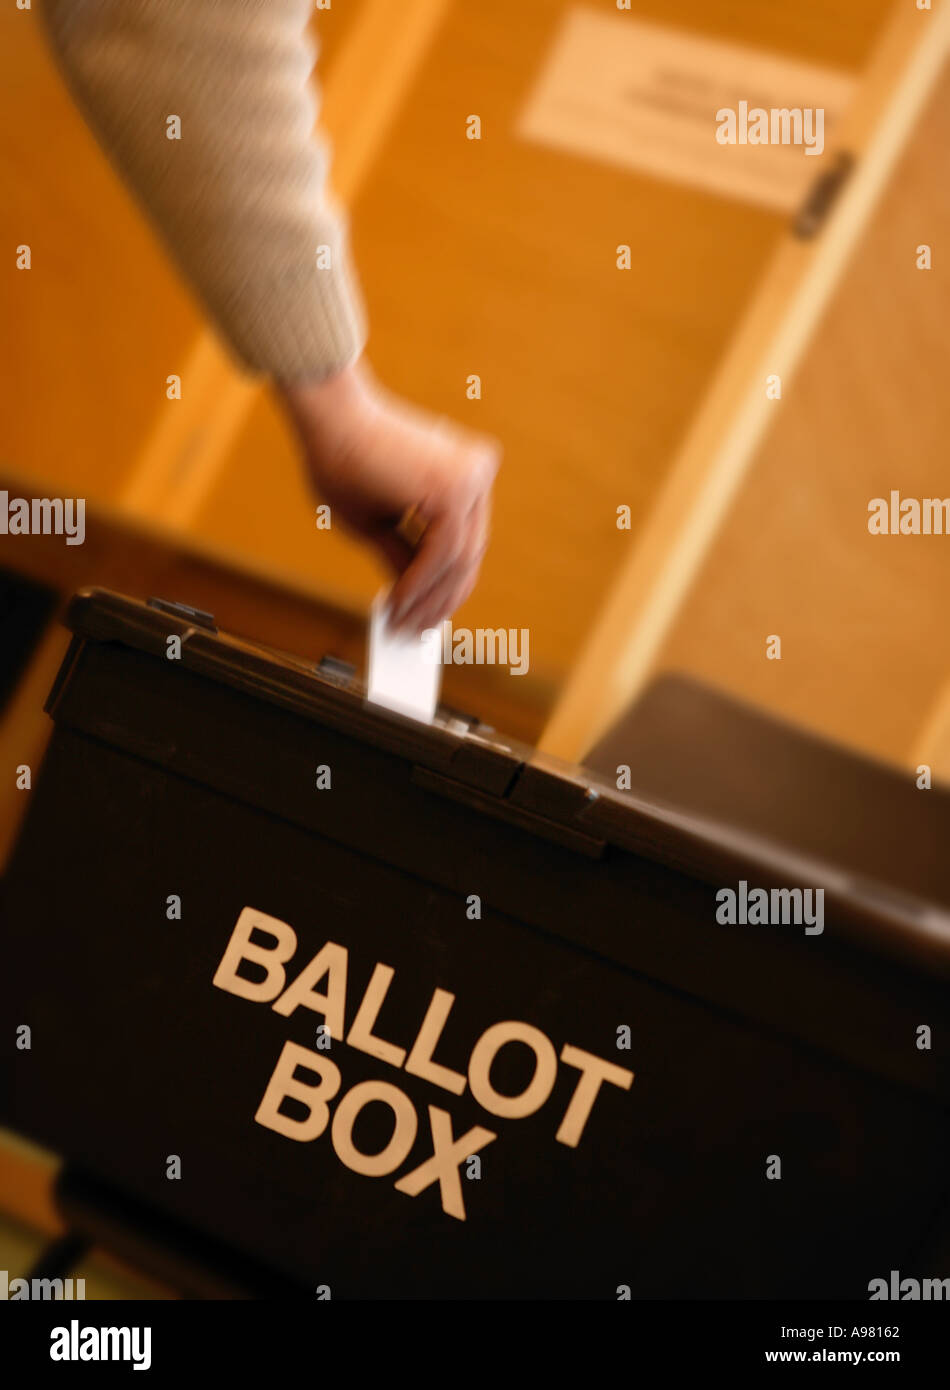 WHITE MAN MALE HAND PLACING VOTE INTO BALLOT BOX AT POLLING STATION - Stock Image